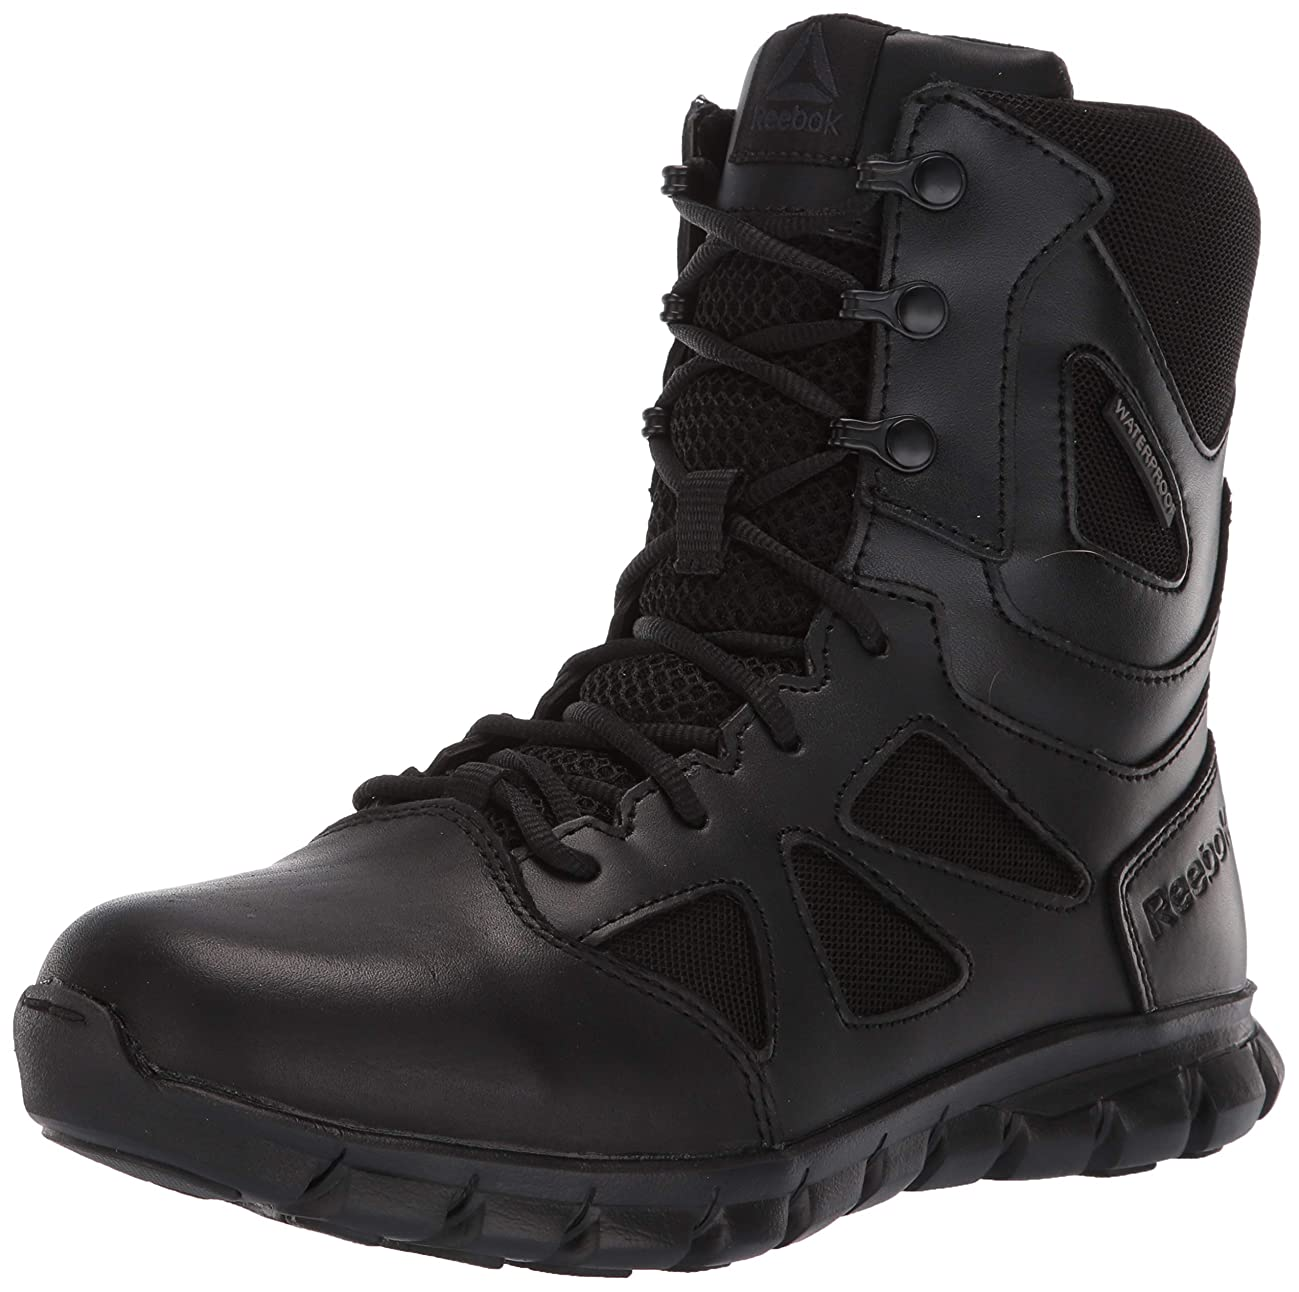 Reebok Women's Sublite Cushion Tactical RB806 Military & Tactical Boot